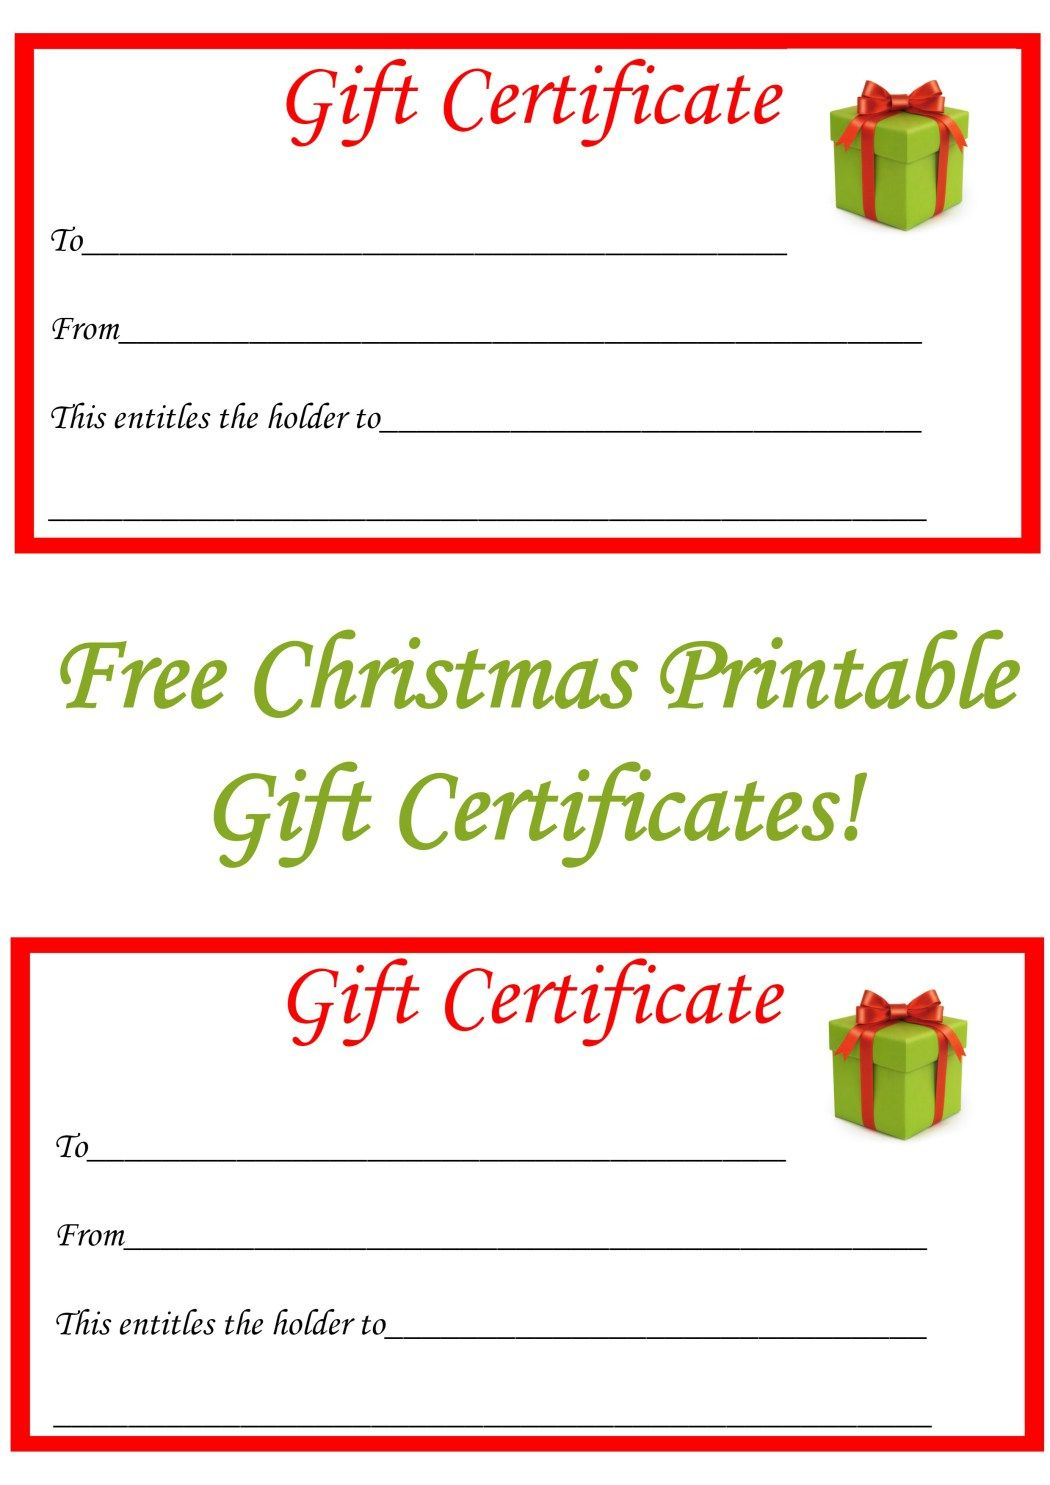 free christmas printable gift certificates gift ideas christmas